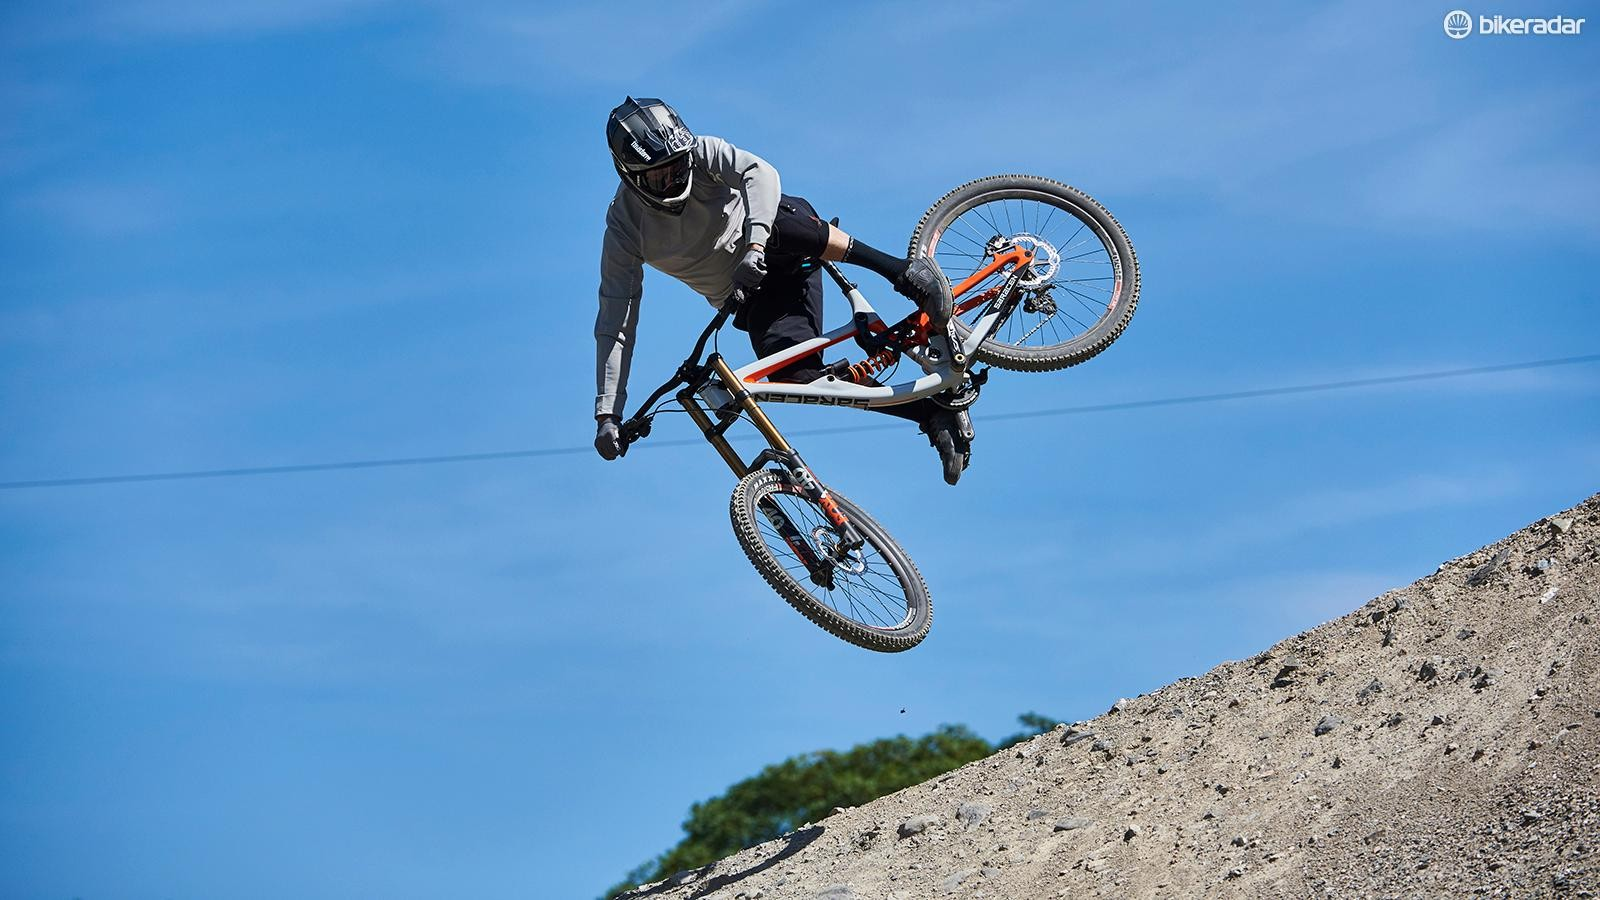 Putting the Myst Team through its paces at Revolution Bike Park